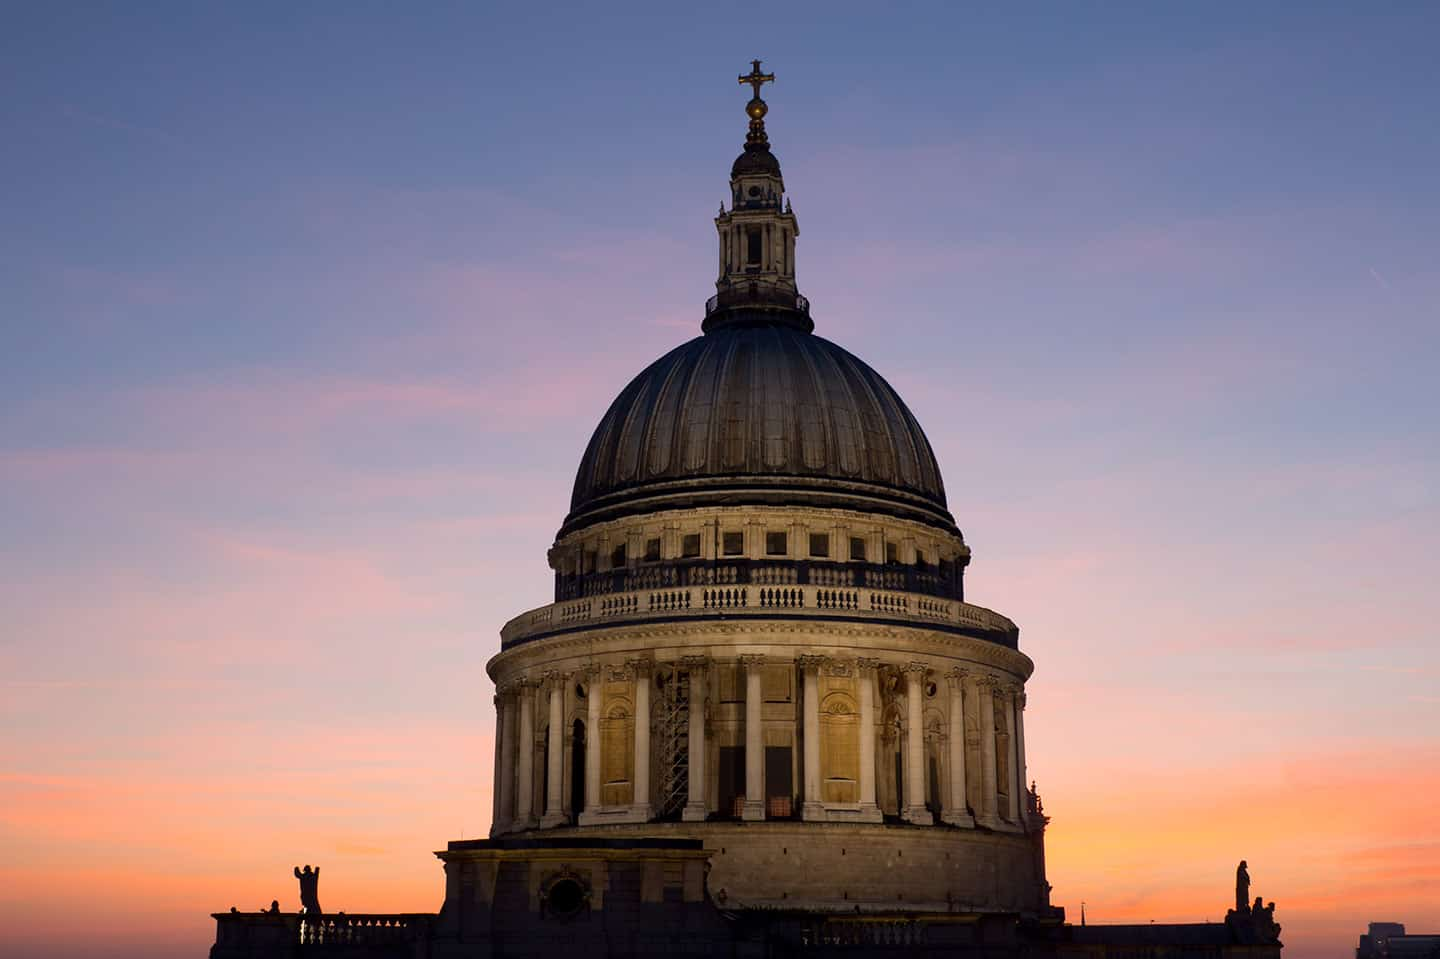 London for free Image of St Paul's Cathedral dome from the rooftop of One New Change